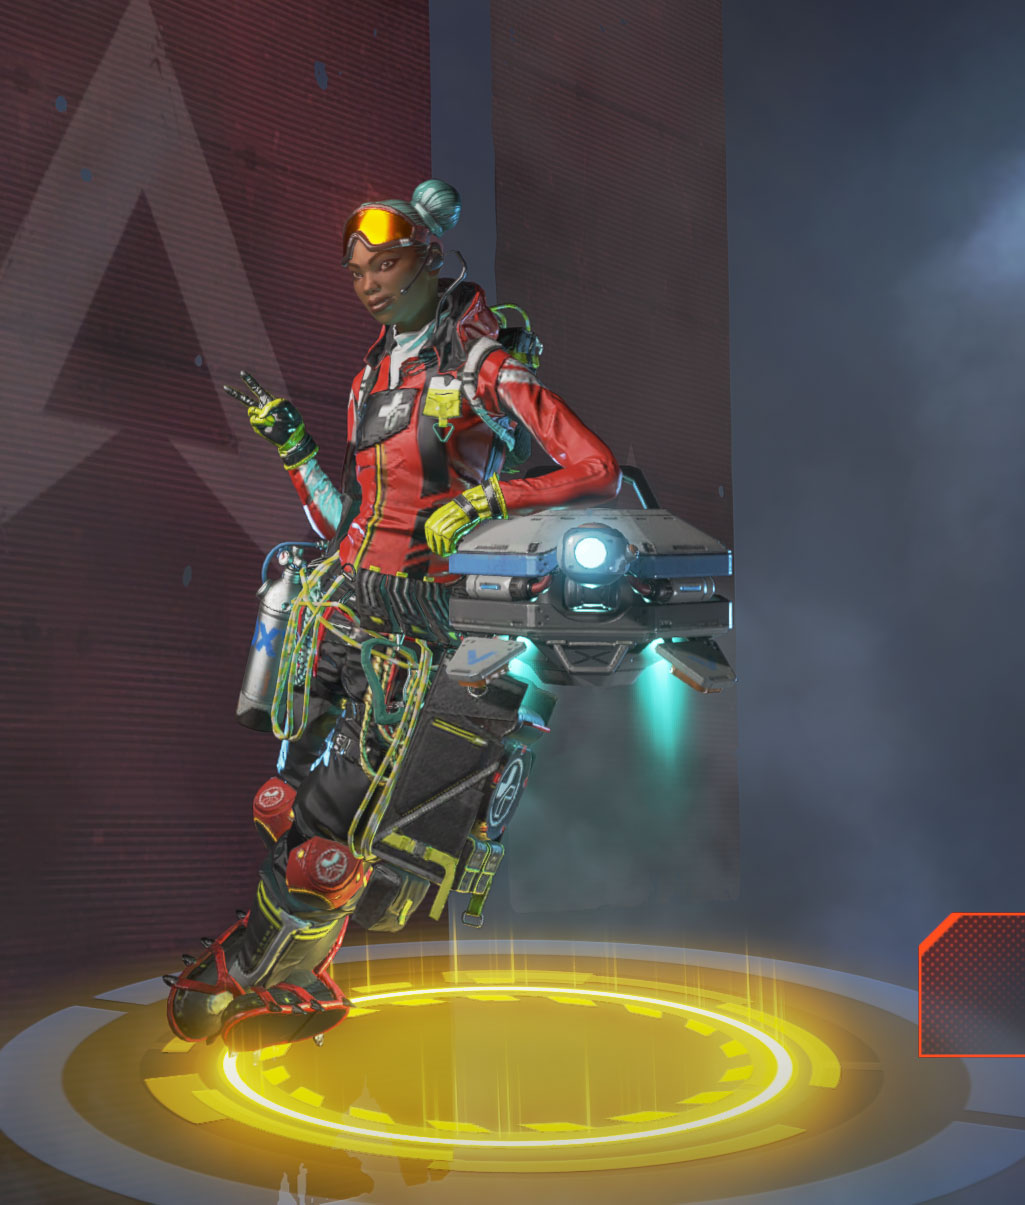 Apex Legends Skins List – All Available Cosmetics for Each Class